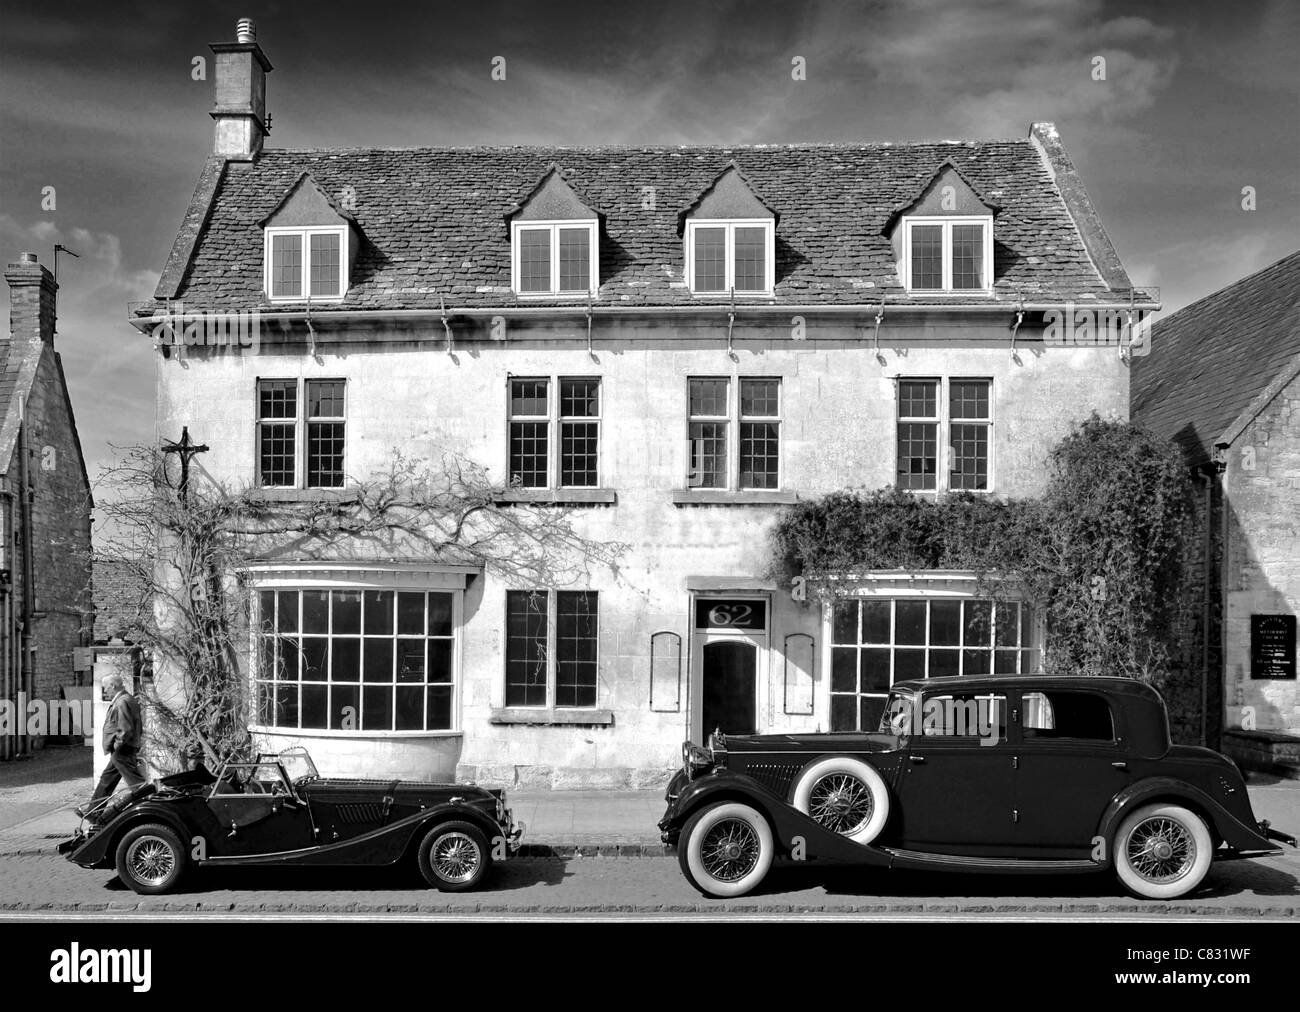 Two classic cars parked outside a historic building, Broadway, Cotswolds. Available in colour and black and white. - Stock Image